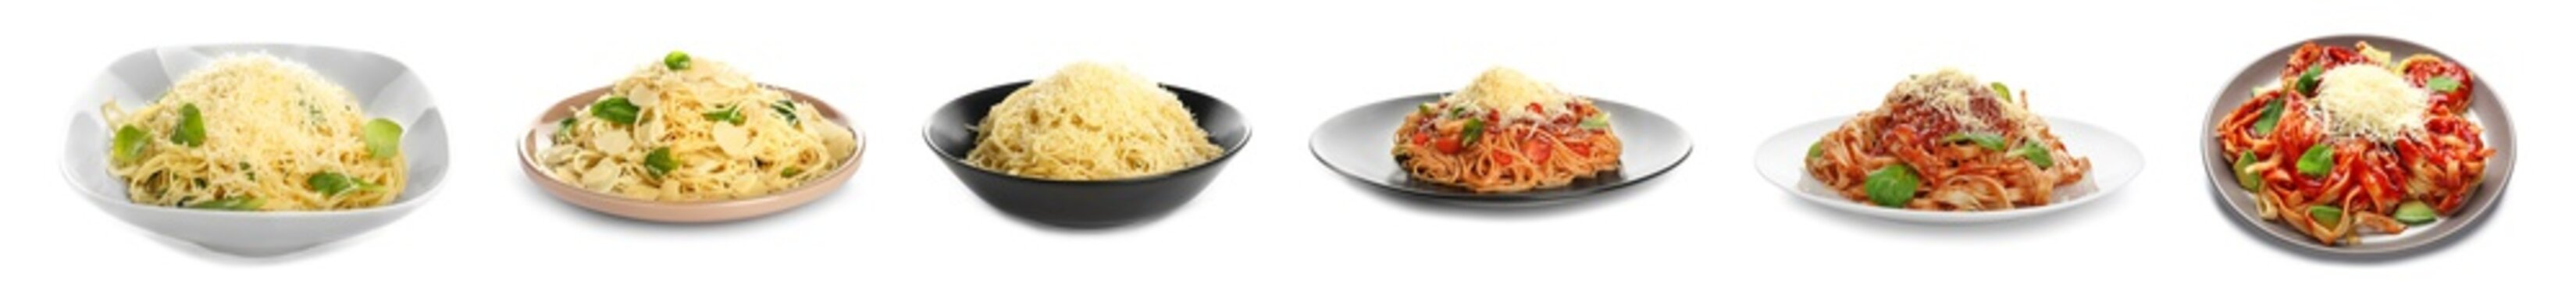 Tasty pasta with Parmesan cheese on white background